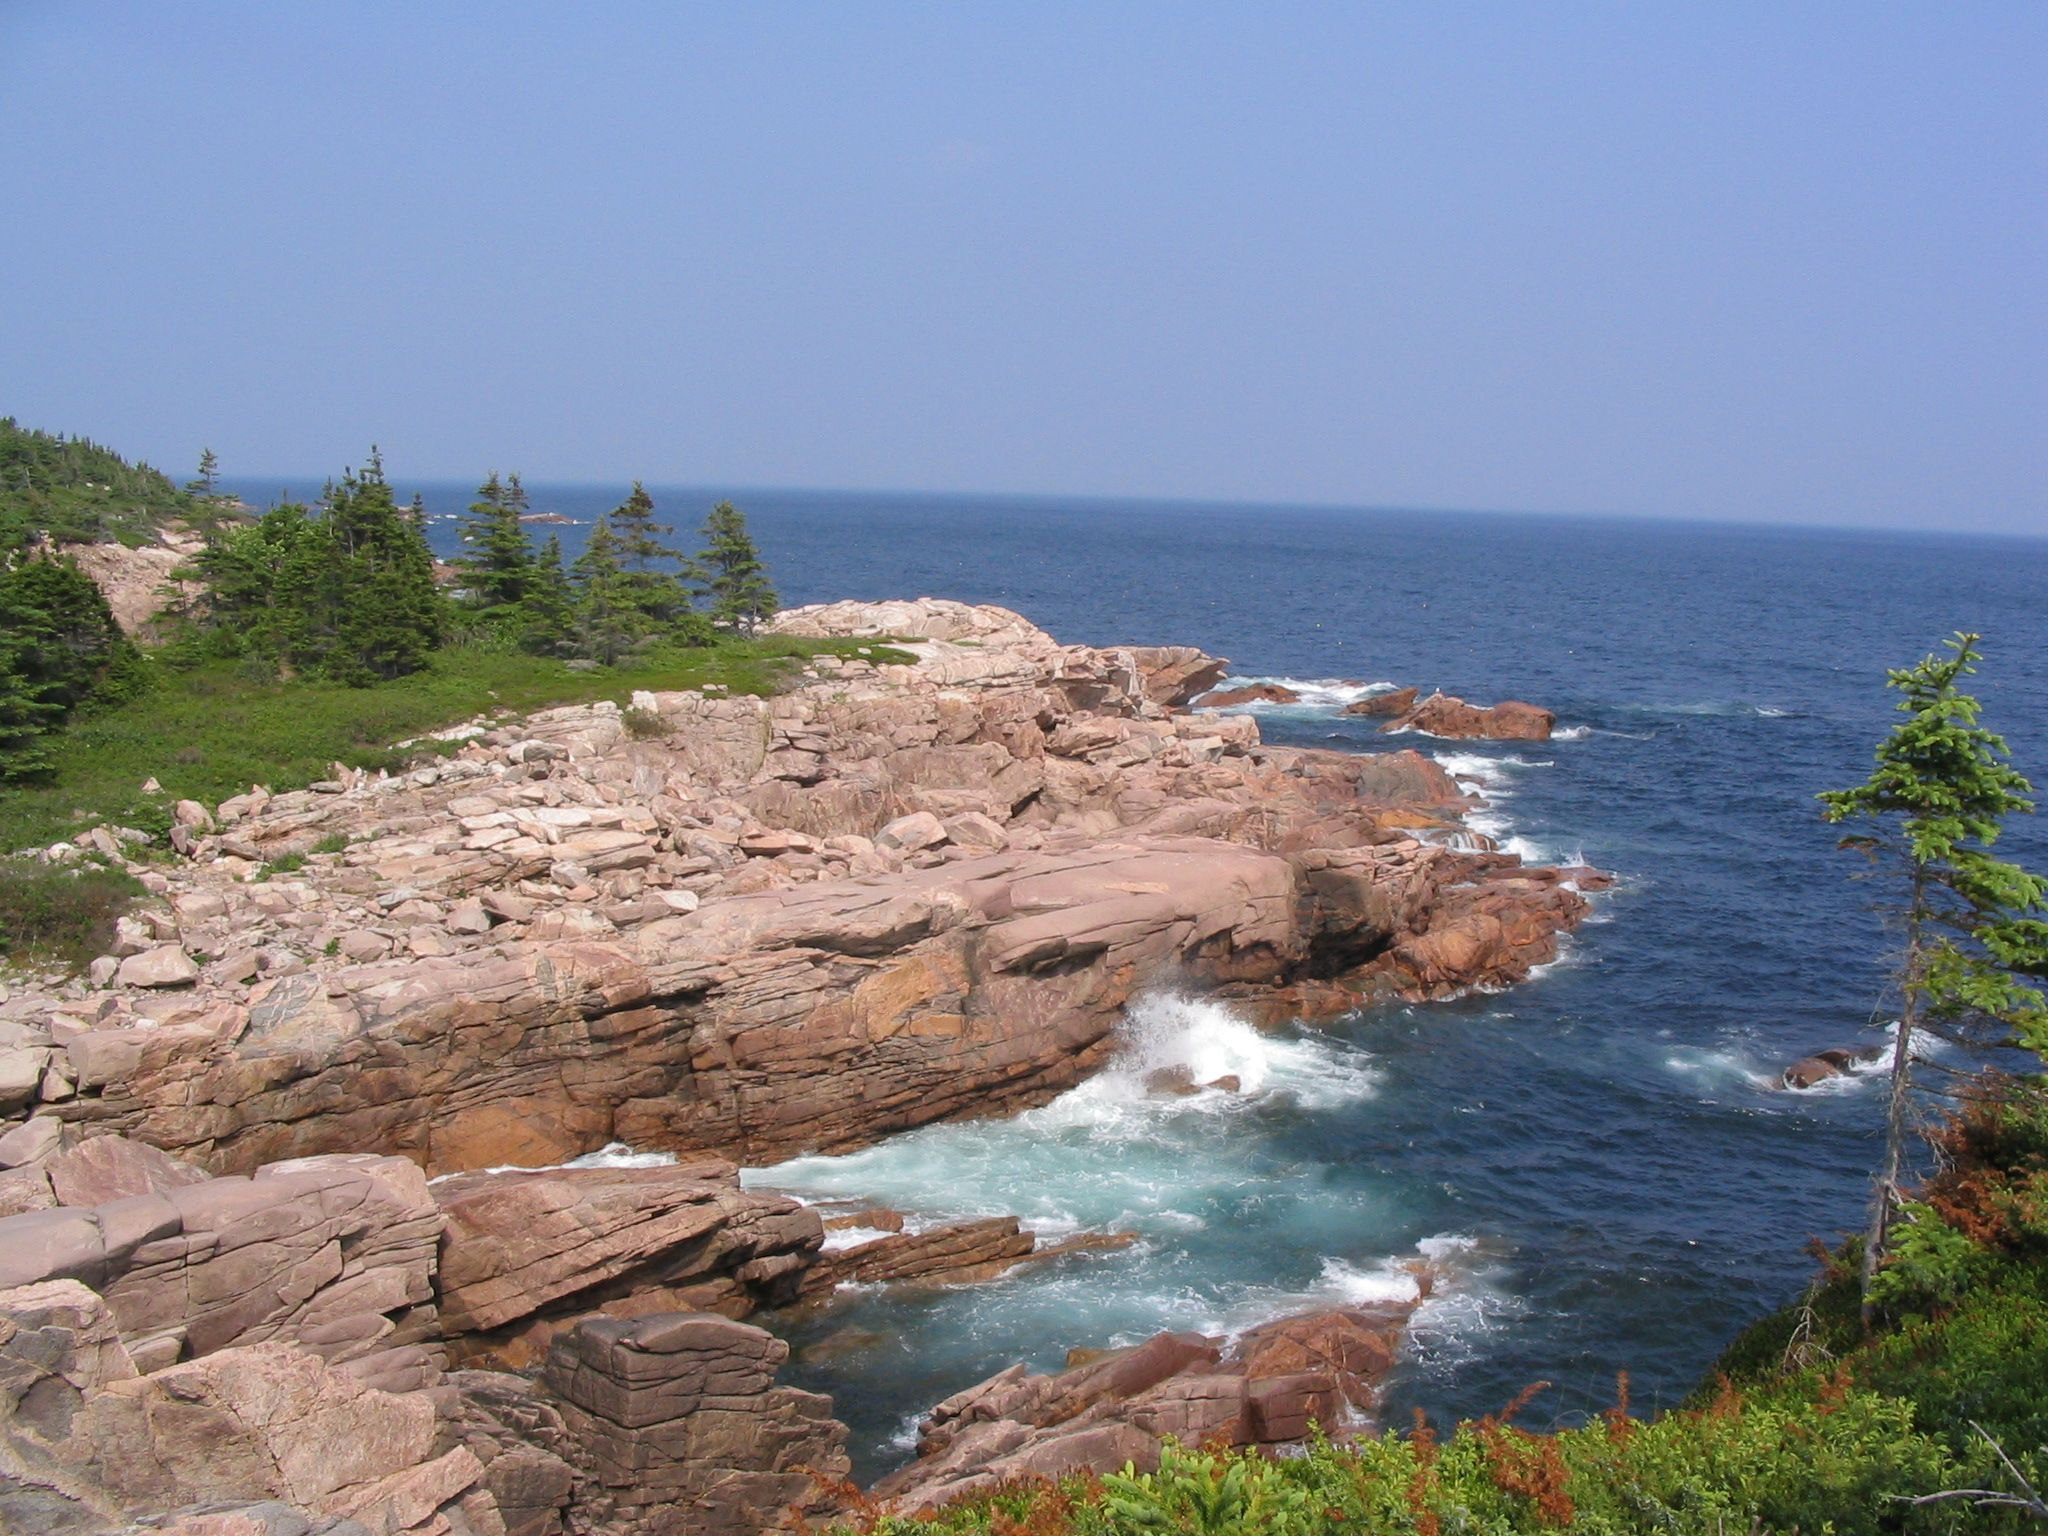 The Coastal hiking trail not far from Ingonish on the Cabot Trail in Cape Breton.